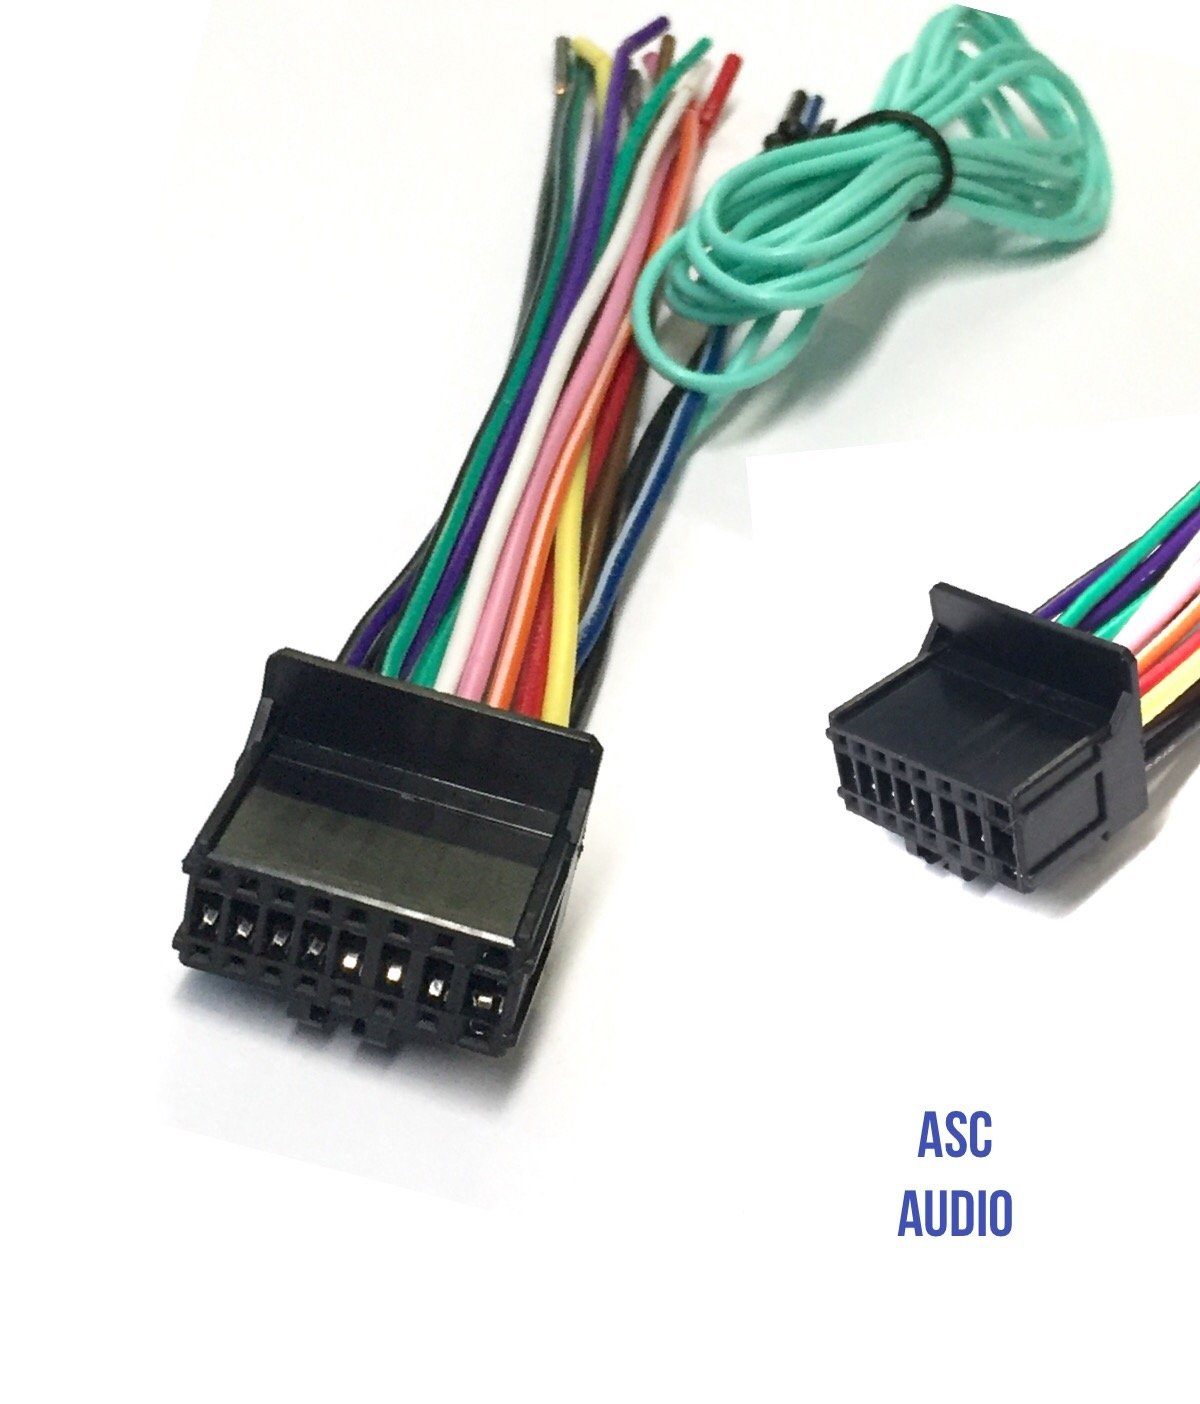 Asc Car Stereo Power Speaker Wire Harness Plug For Pioneer Premier Avh P2300dvd Wiring Diagram Aftermarket Dvd Nav Radio P4200dvd P4300dvd P4250dvd Cdp1301 Cdp1089